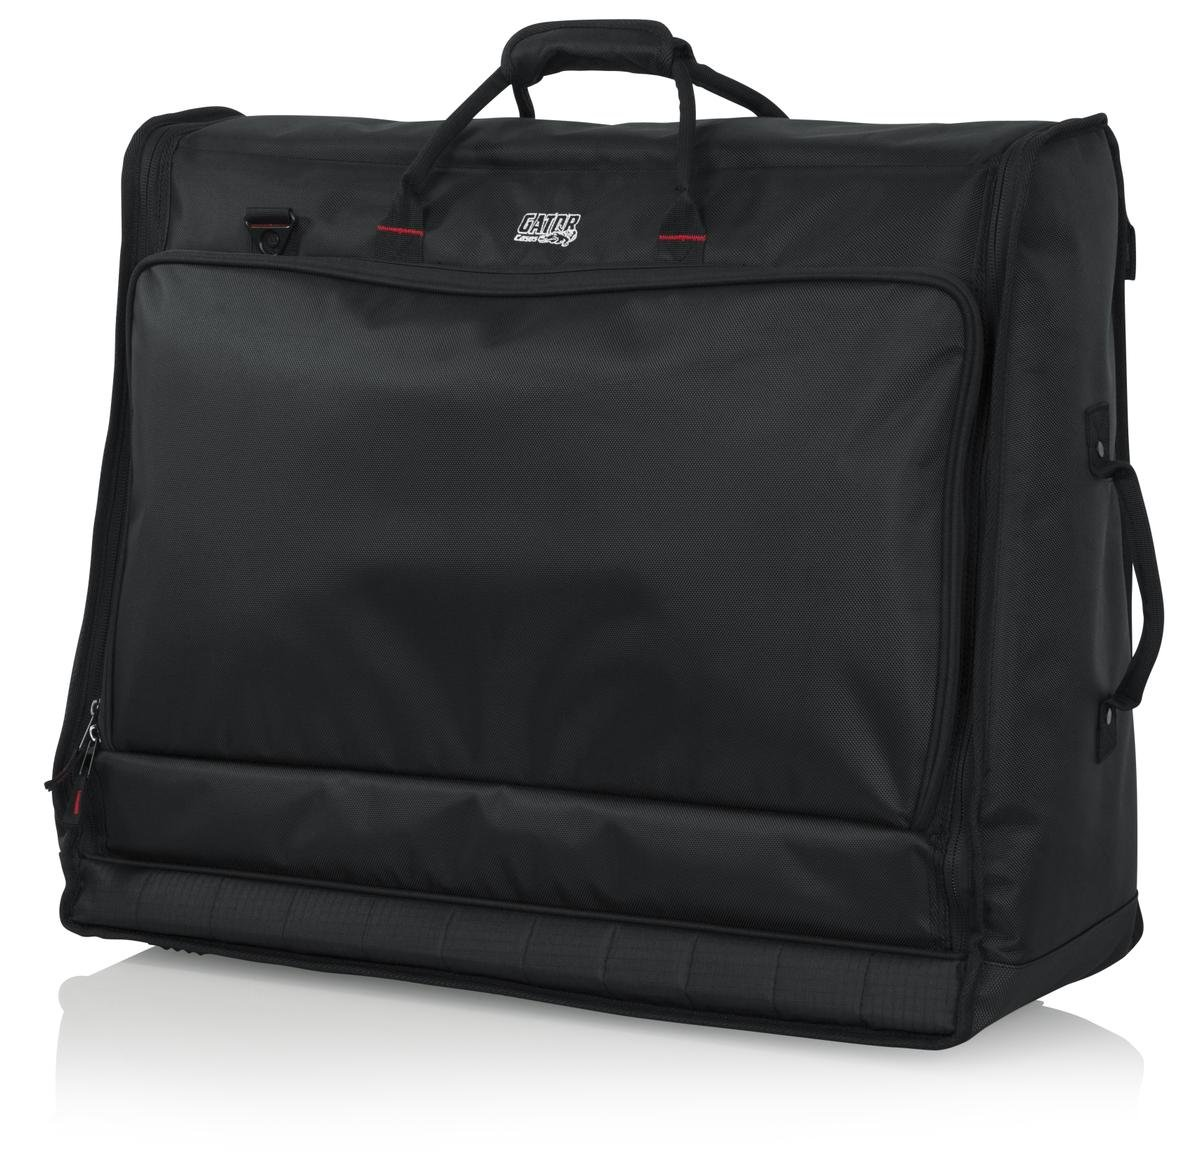 Gator Cases Padded Large Format Mixer Carry Bag; Fits Mixers Such as Behringer X32 Compact  26'' x 21'' x 8.5'' (G-MIXERBAG-2621)